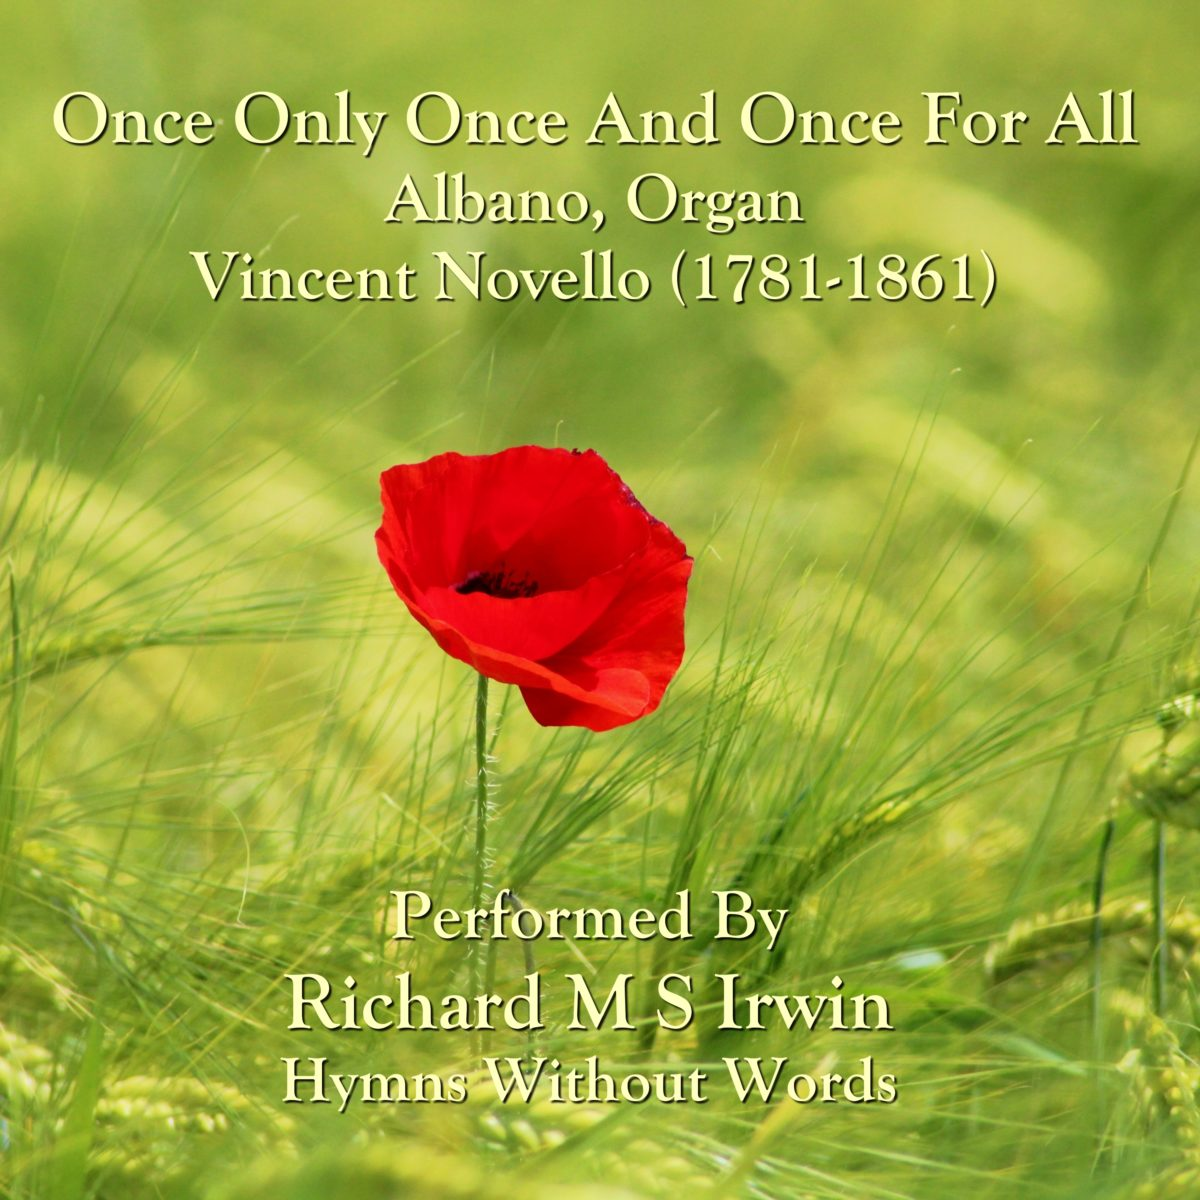 Once Only Once And Once For All (Albano, Organ, 6 Verses)